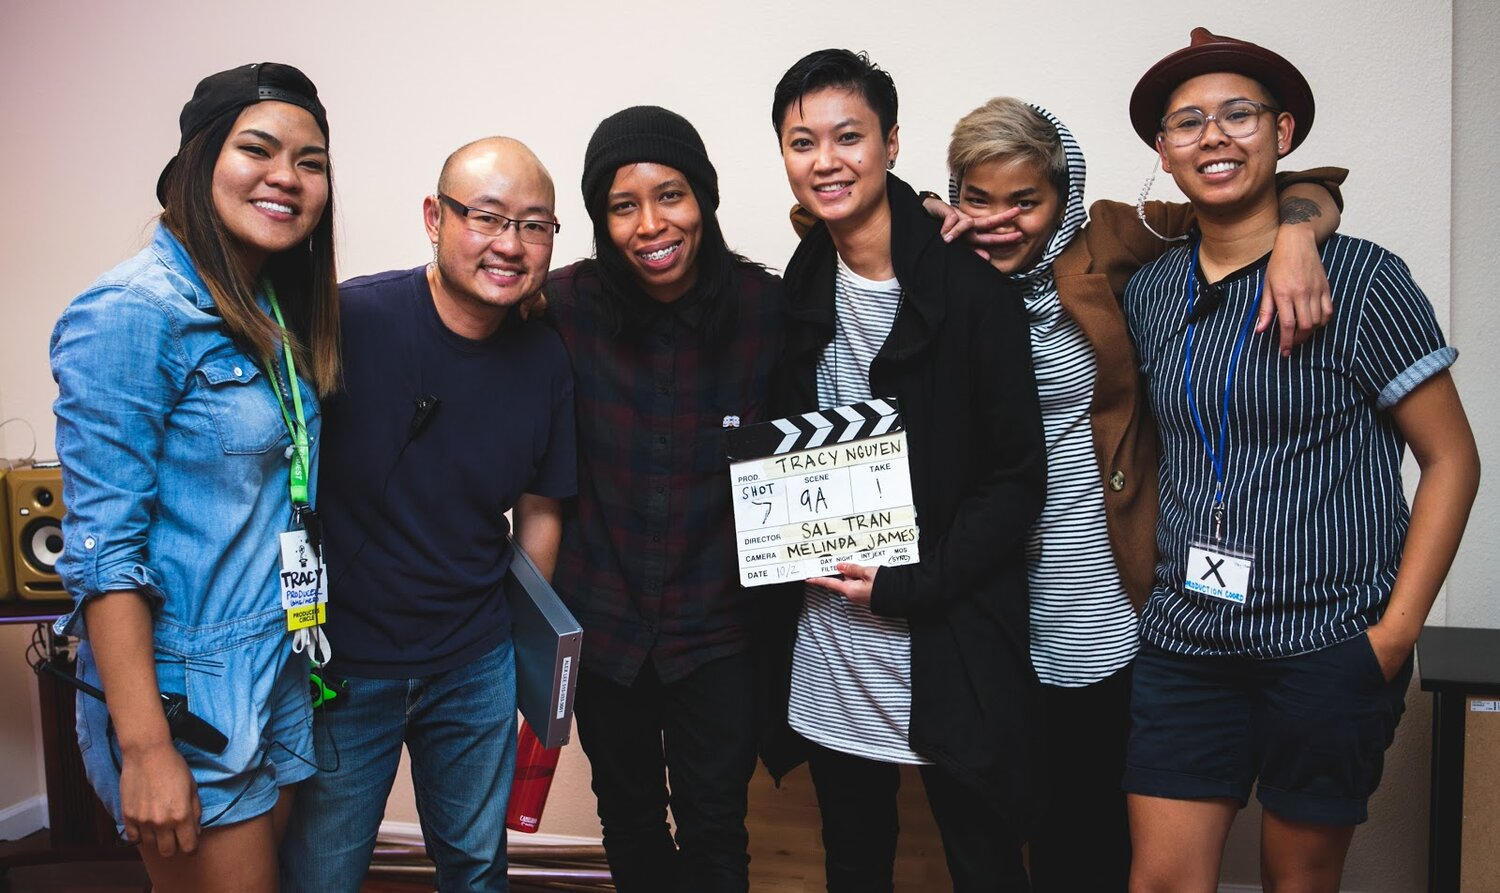 Six people smile with their arms wrapped around one another. At the center is a film slate. Alex Lee is pictured second from the left.